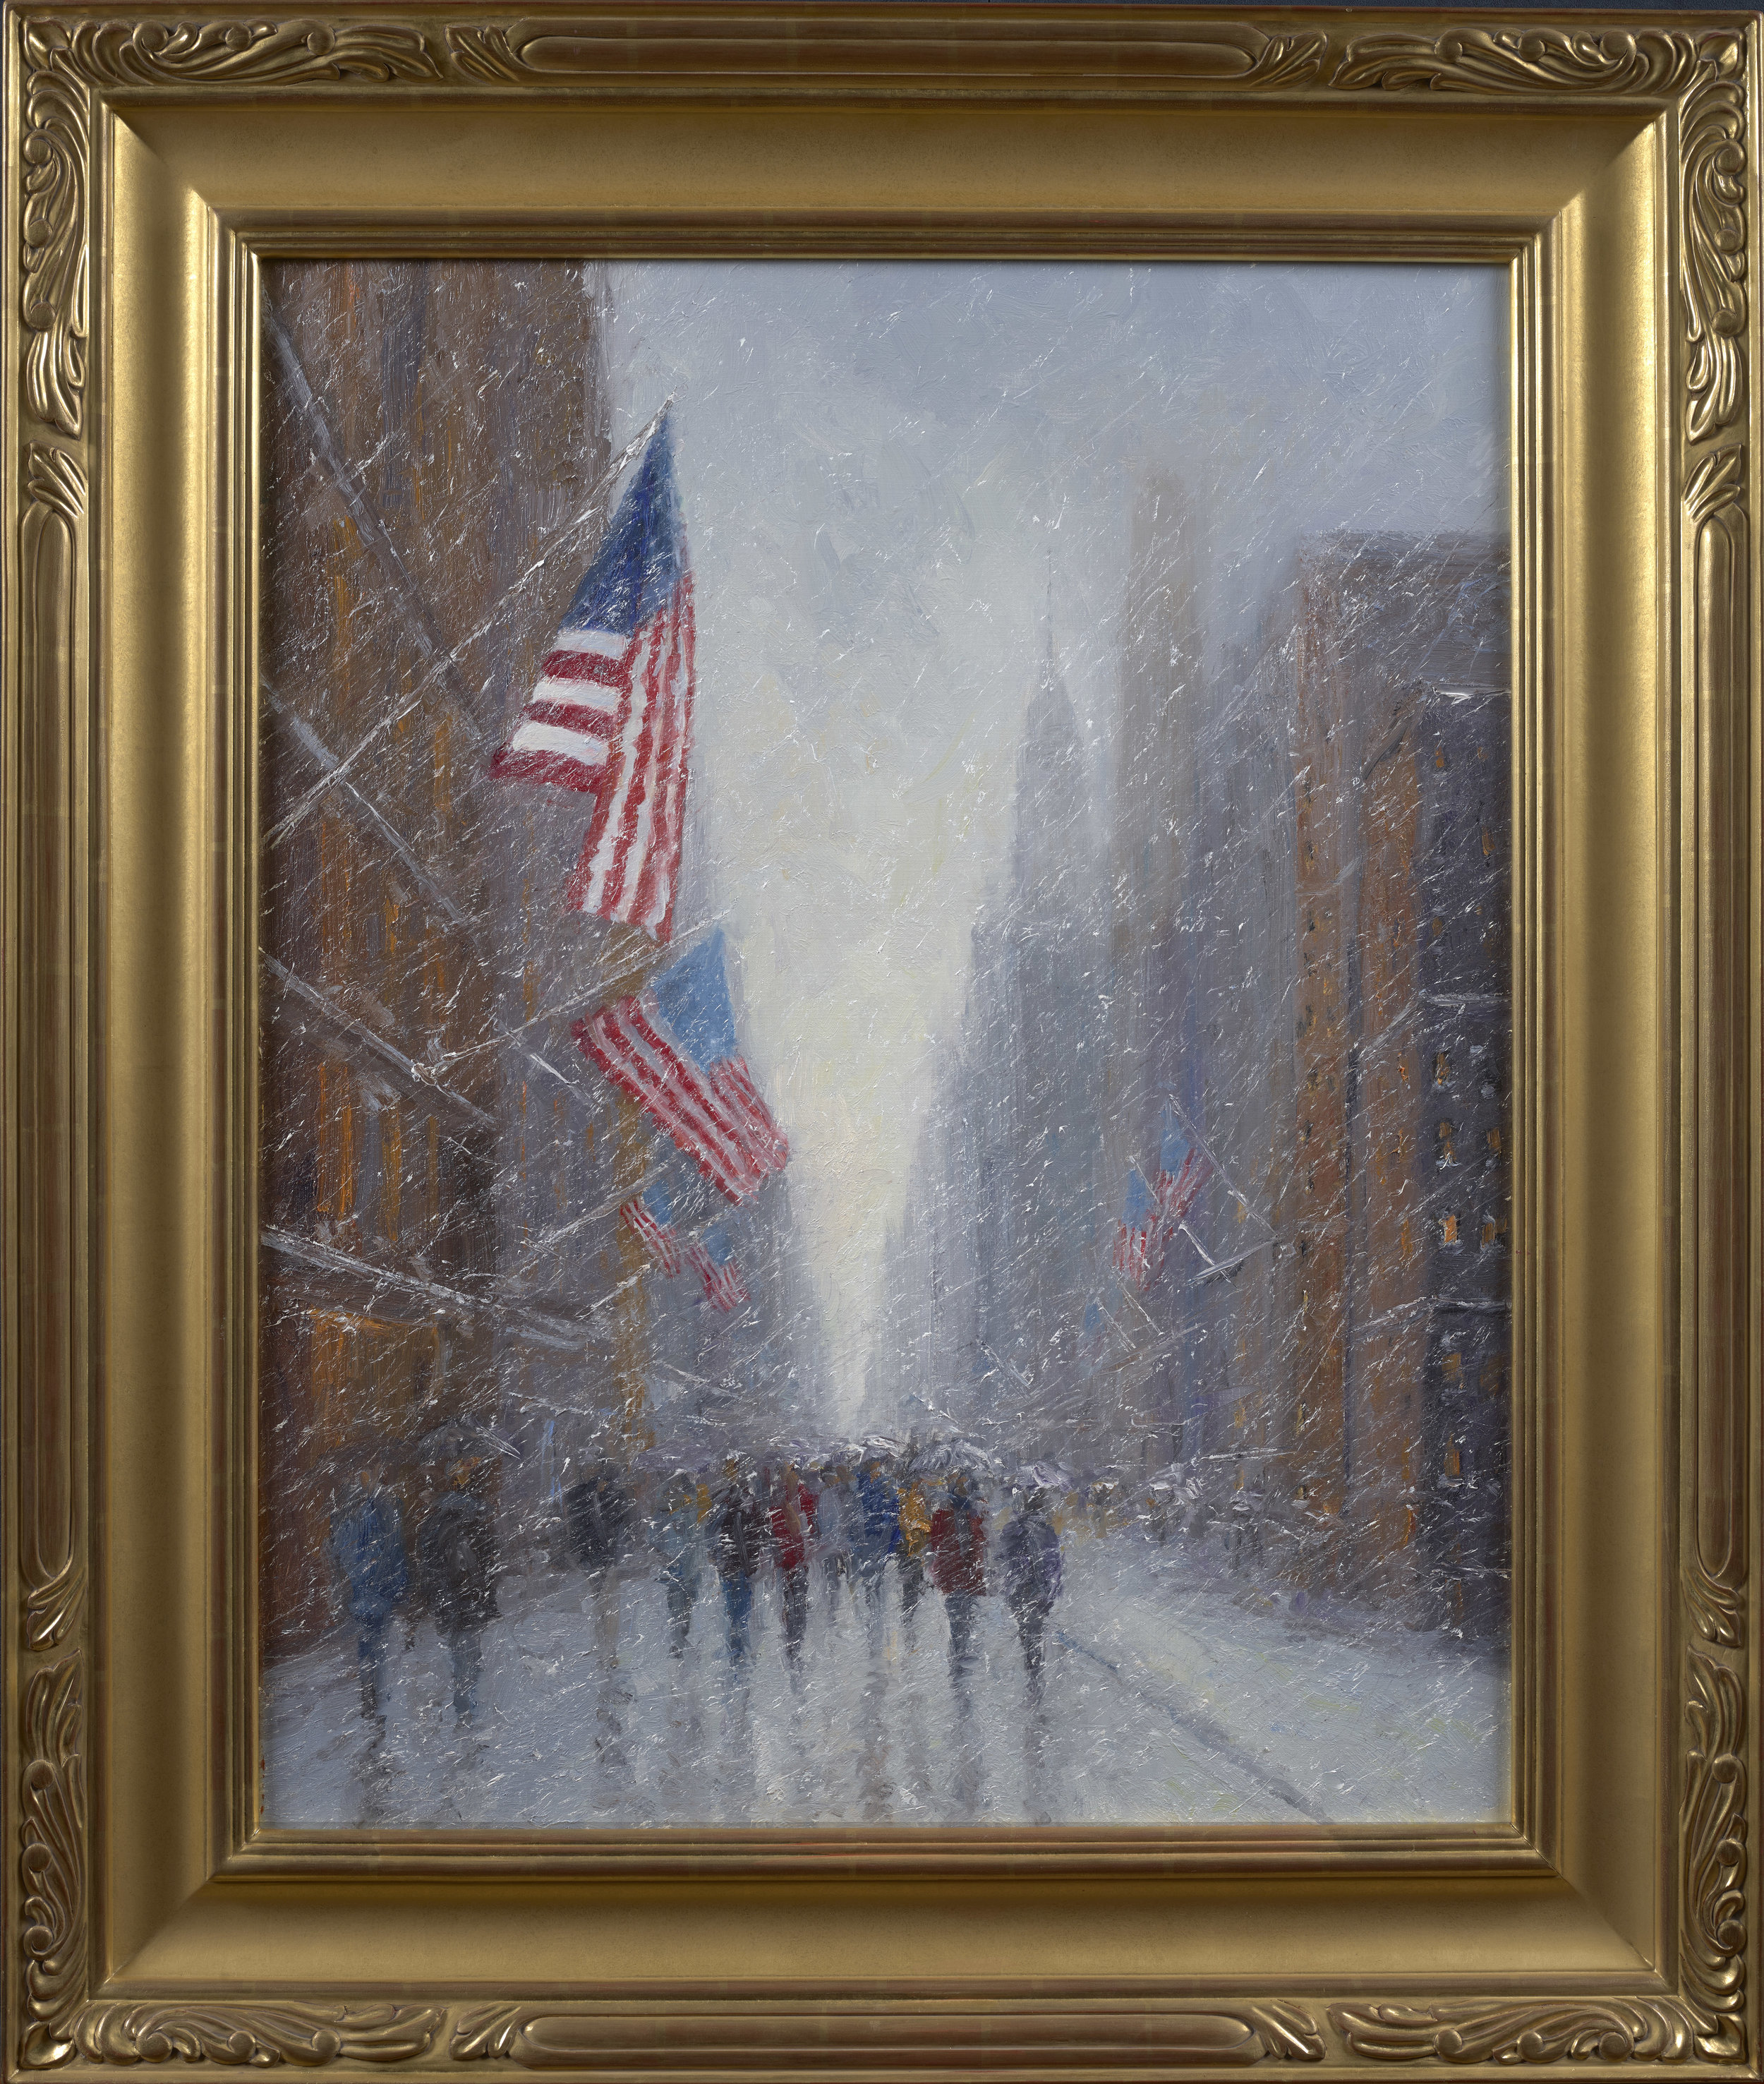 Patriotic Flags, Oil, 30 x 24, SLL by Mark Daly. Available at Rehs Contemporary Galleries